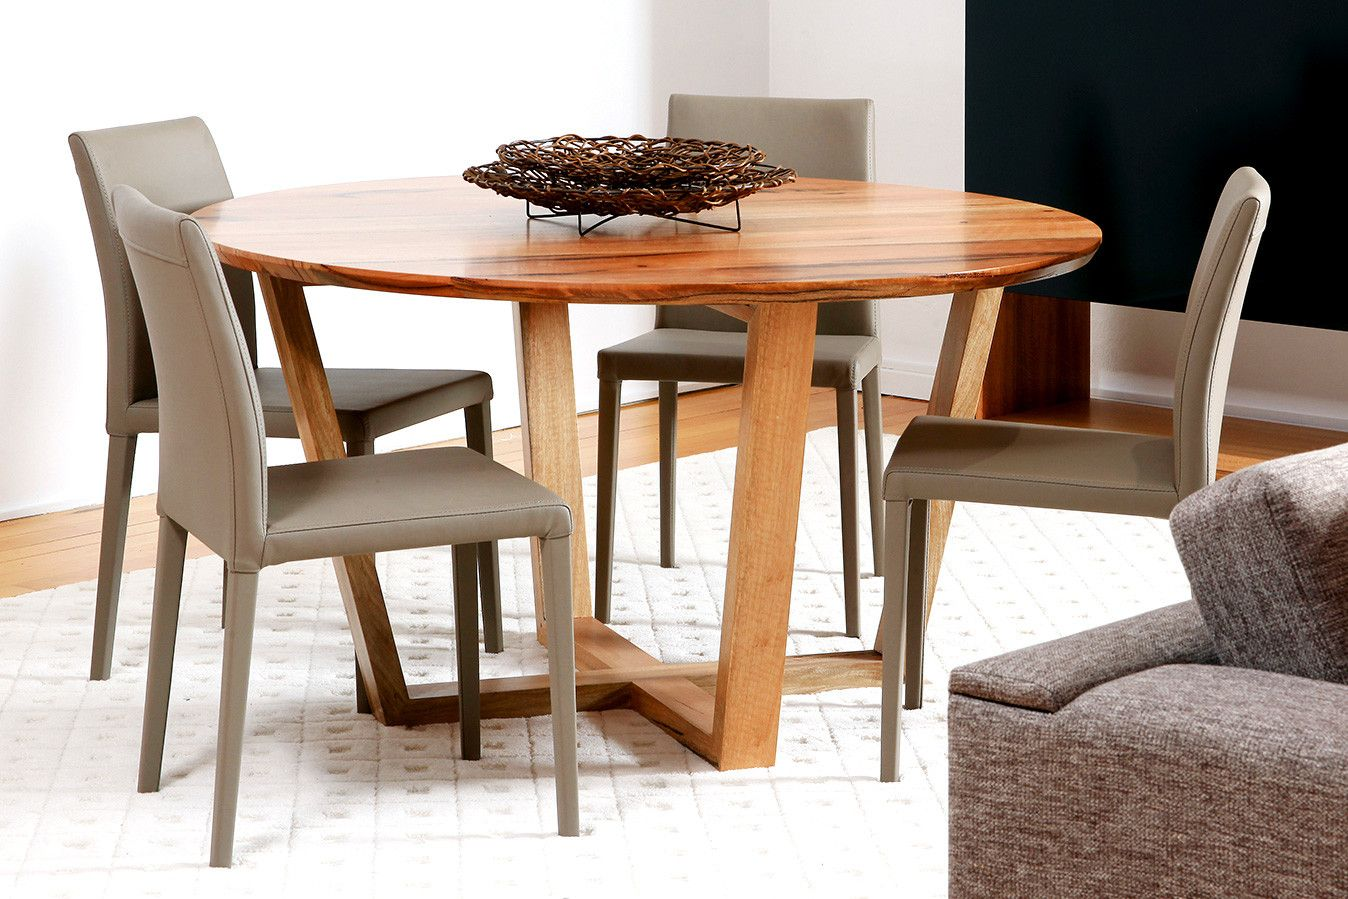 Yallingup Dining Table With Images Contemporary Round Dining